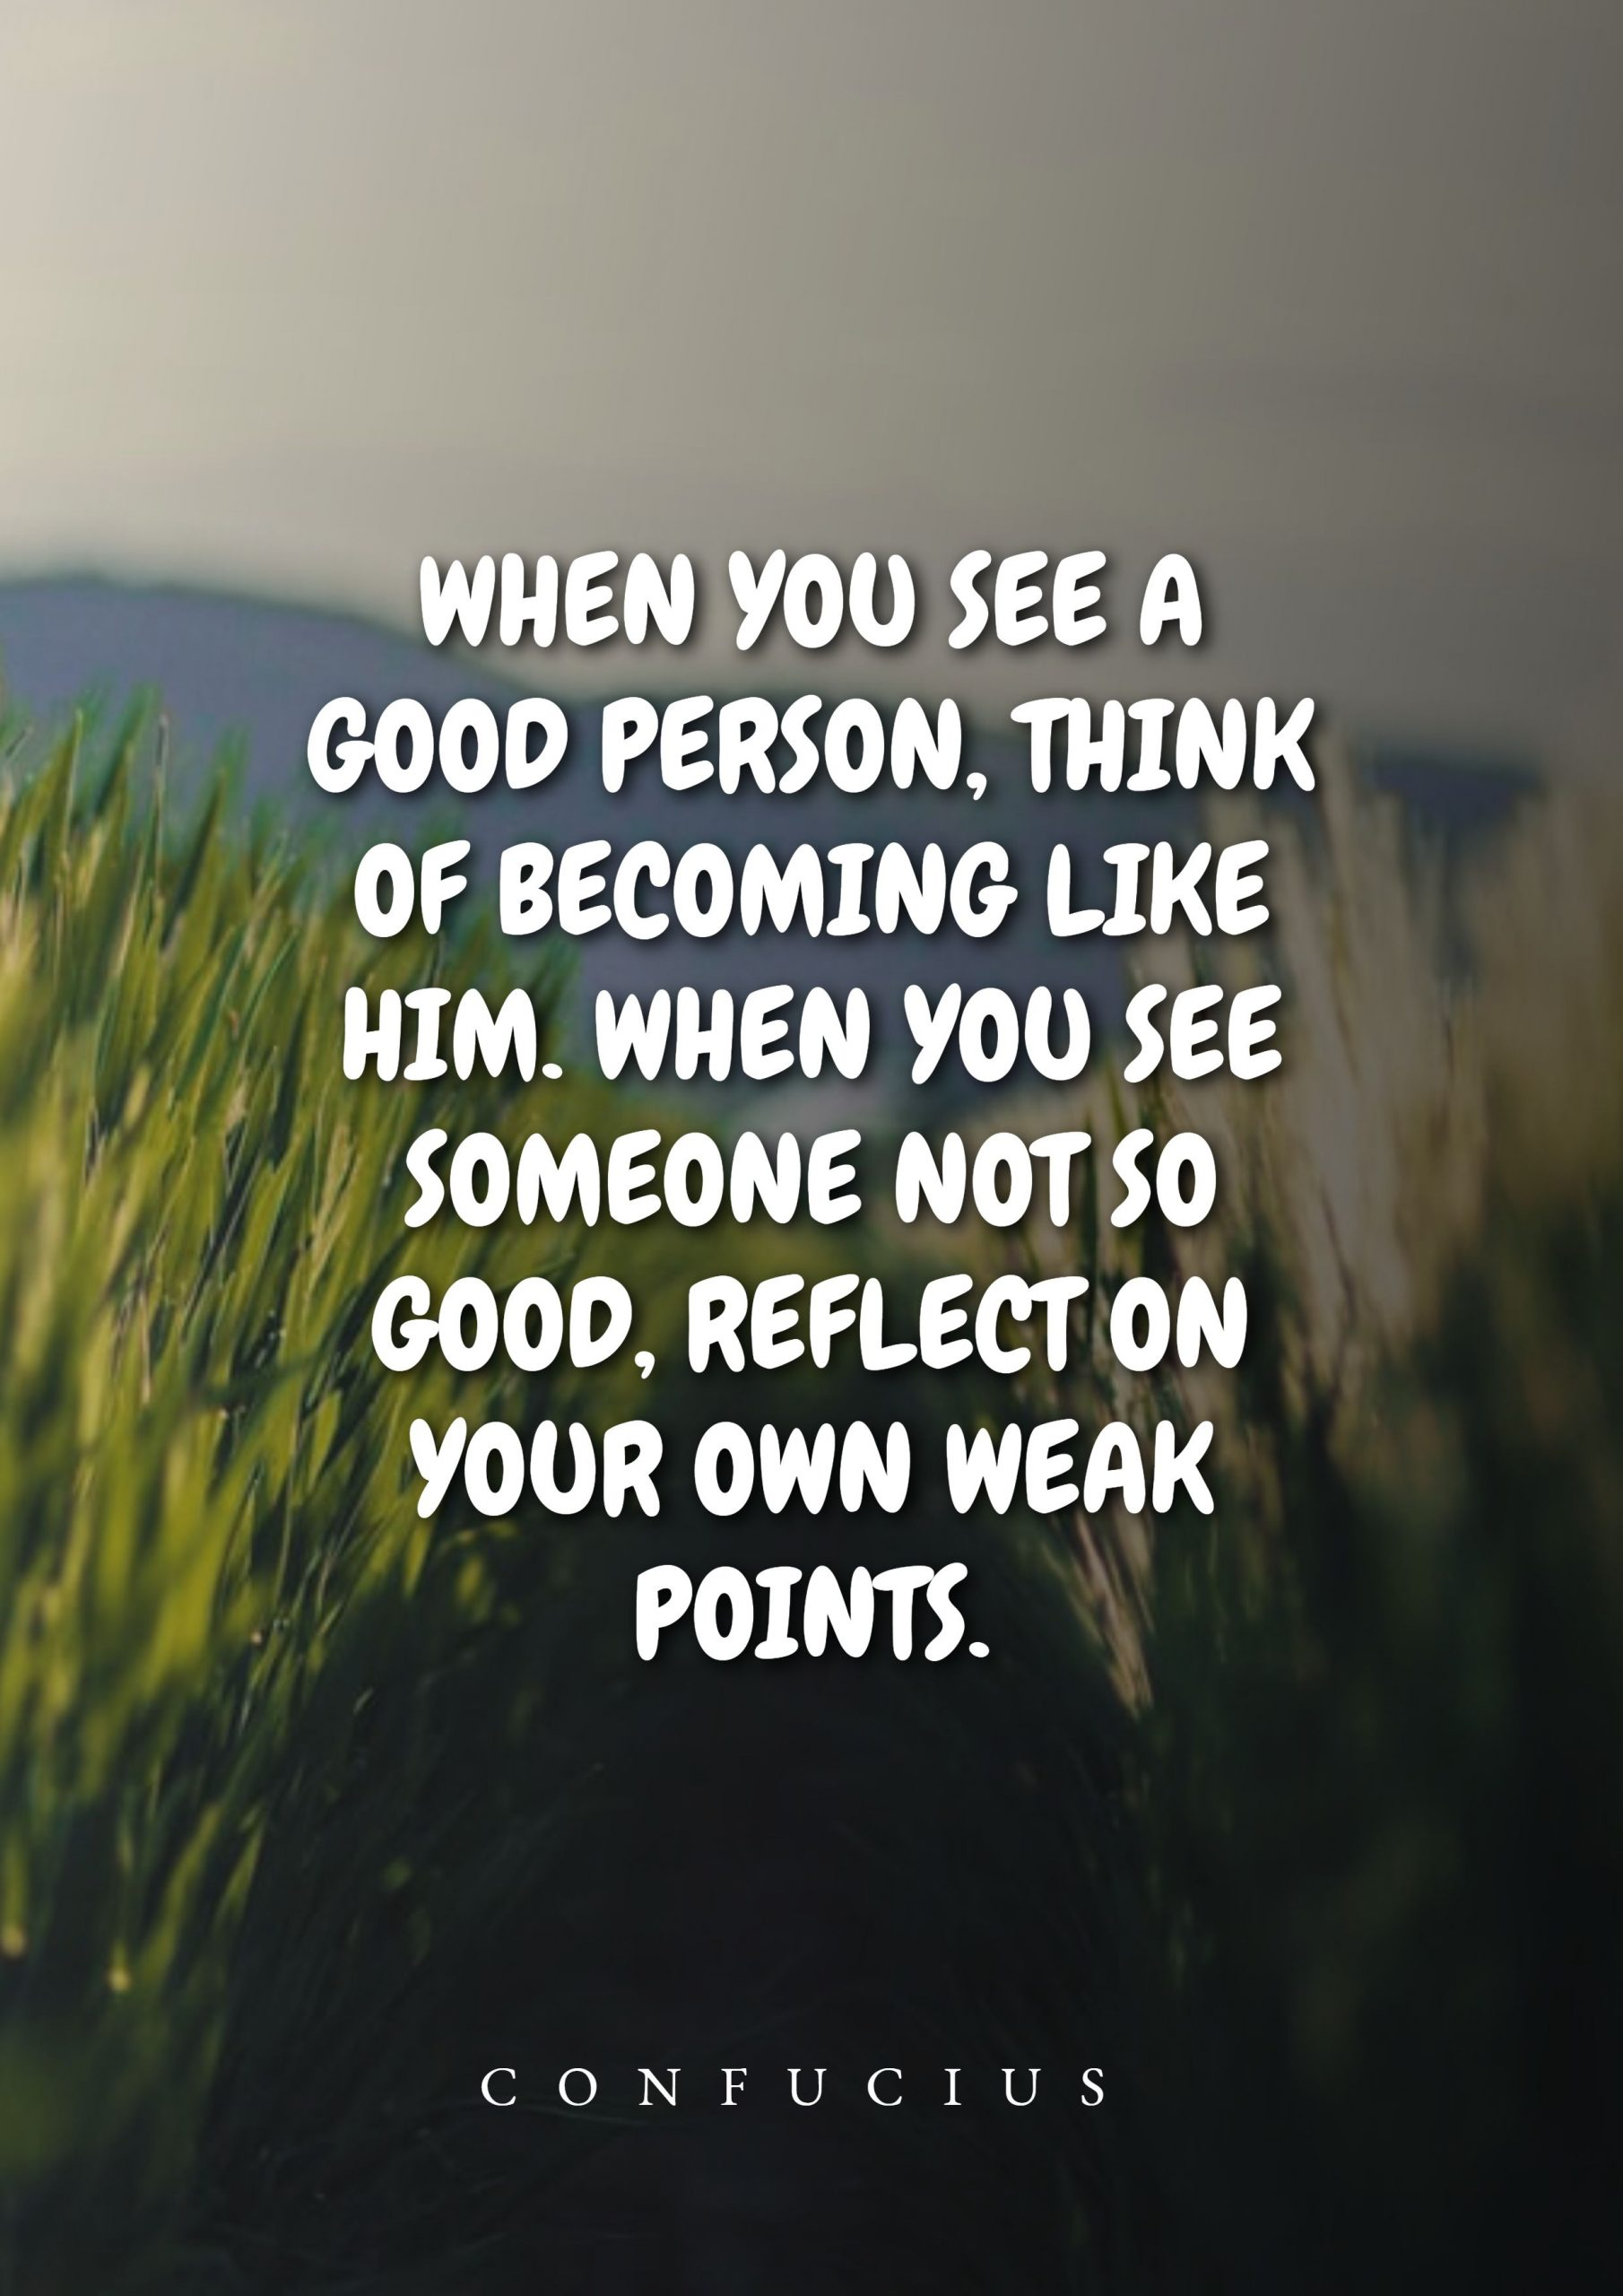 Quotes image of When you see a good person, think of becoming like him. When you see someone not so good, reflect on your own weak points.